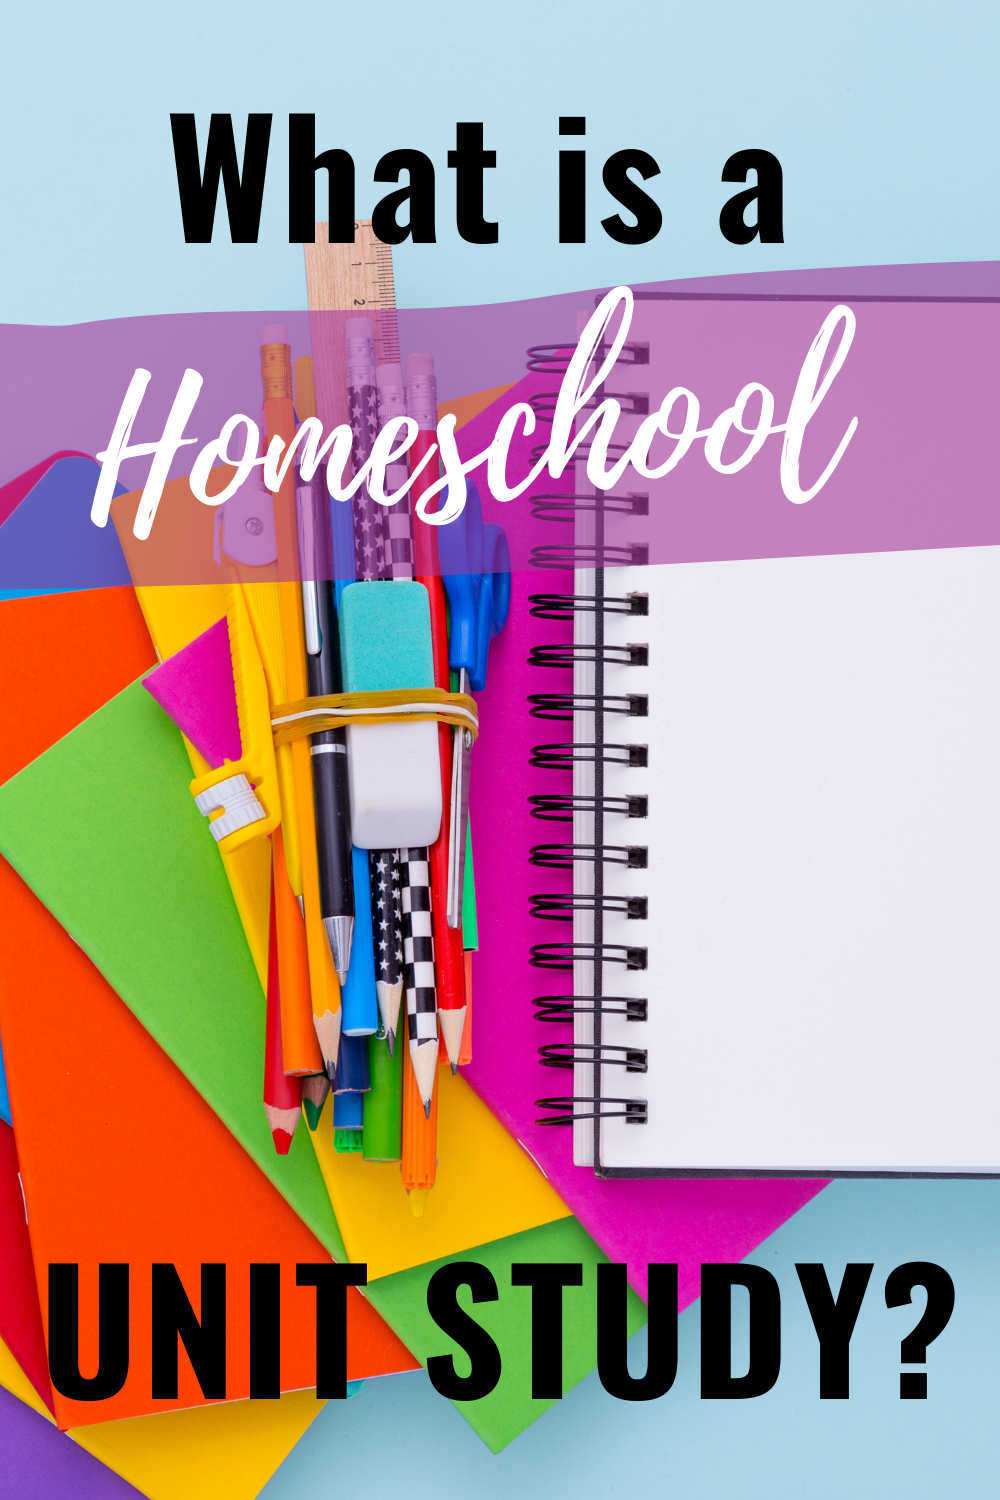 Homeschool Unit Studies - What Are They? Why Do People Love Them?